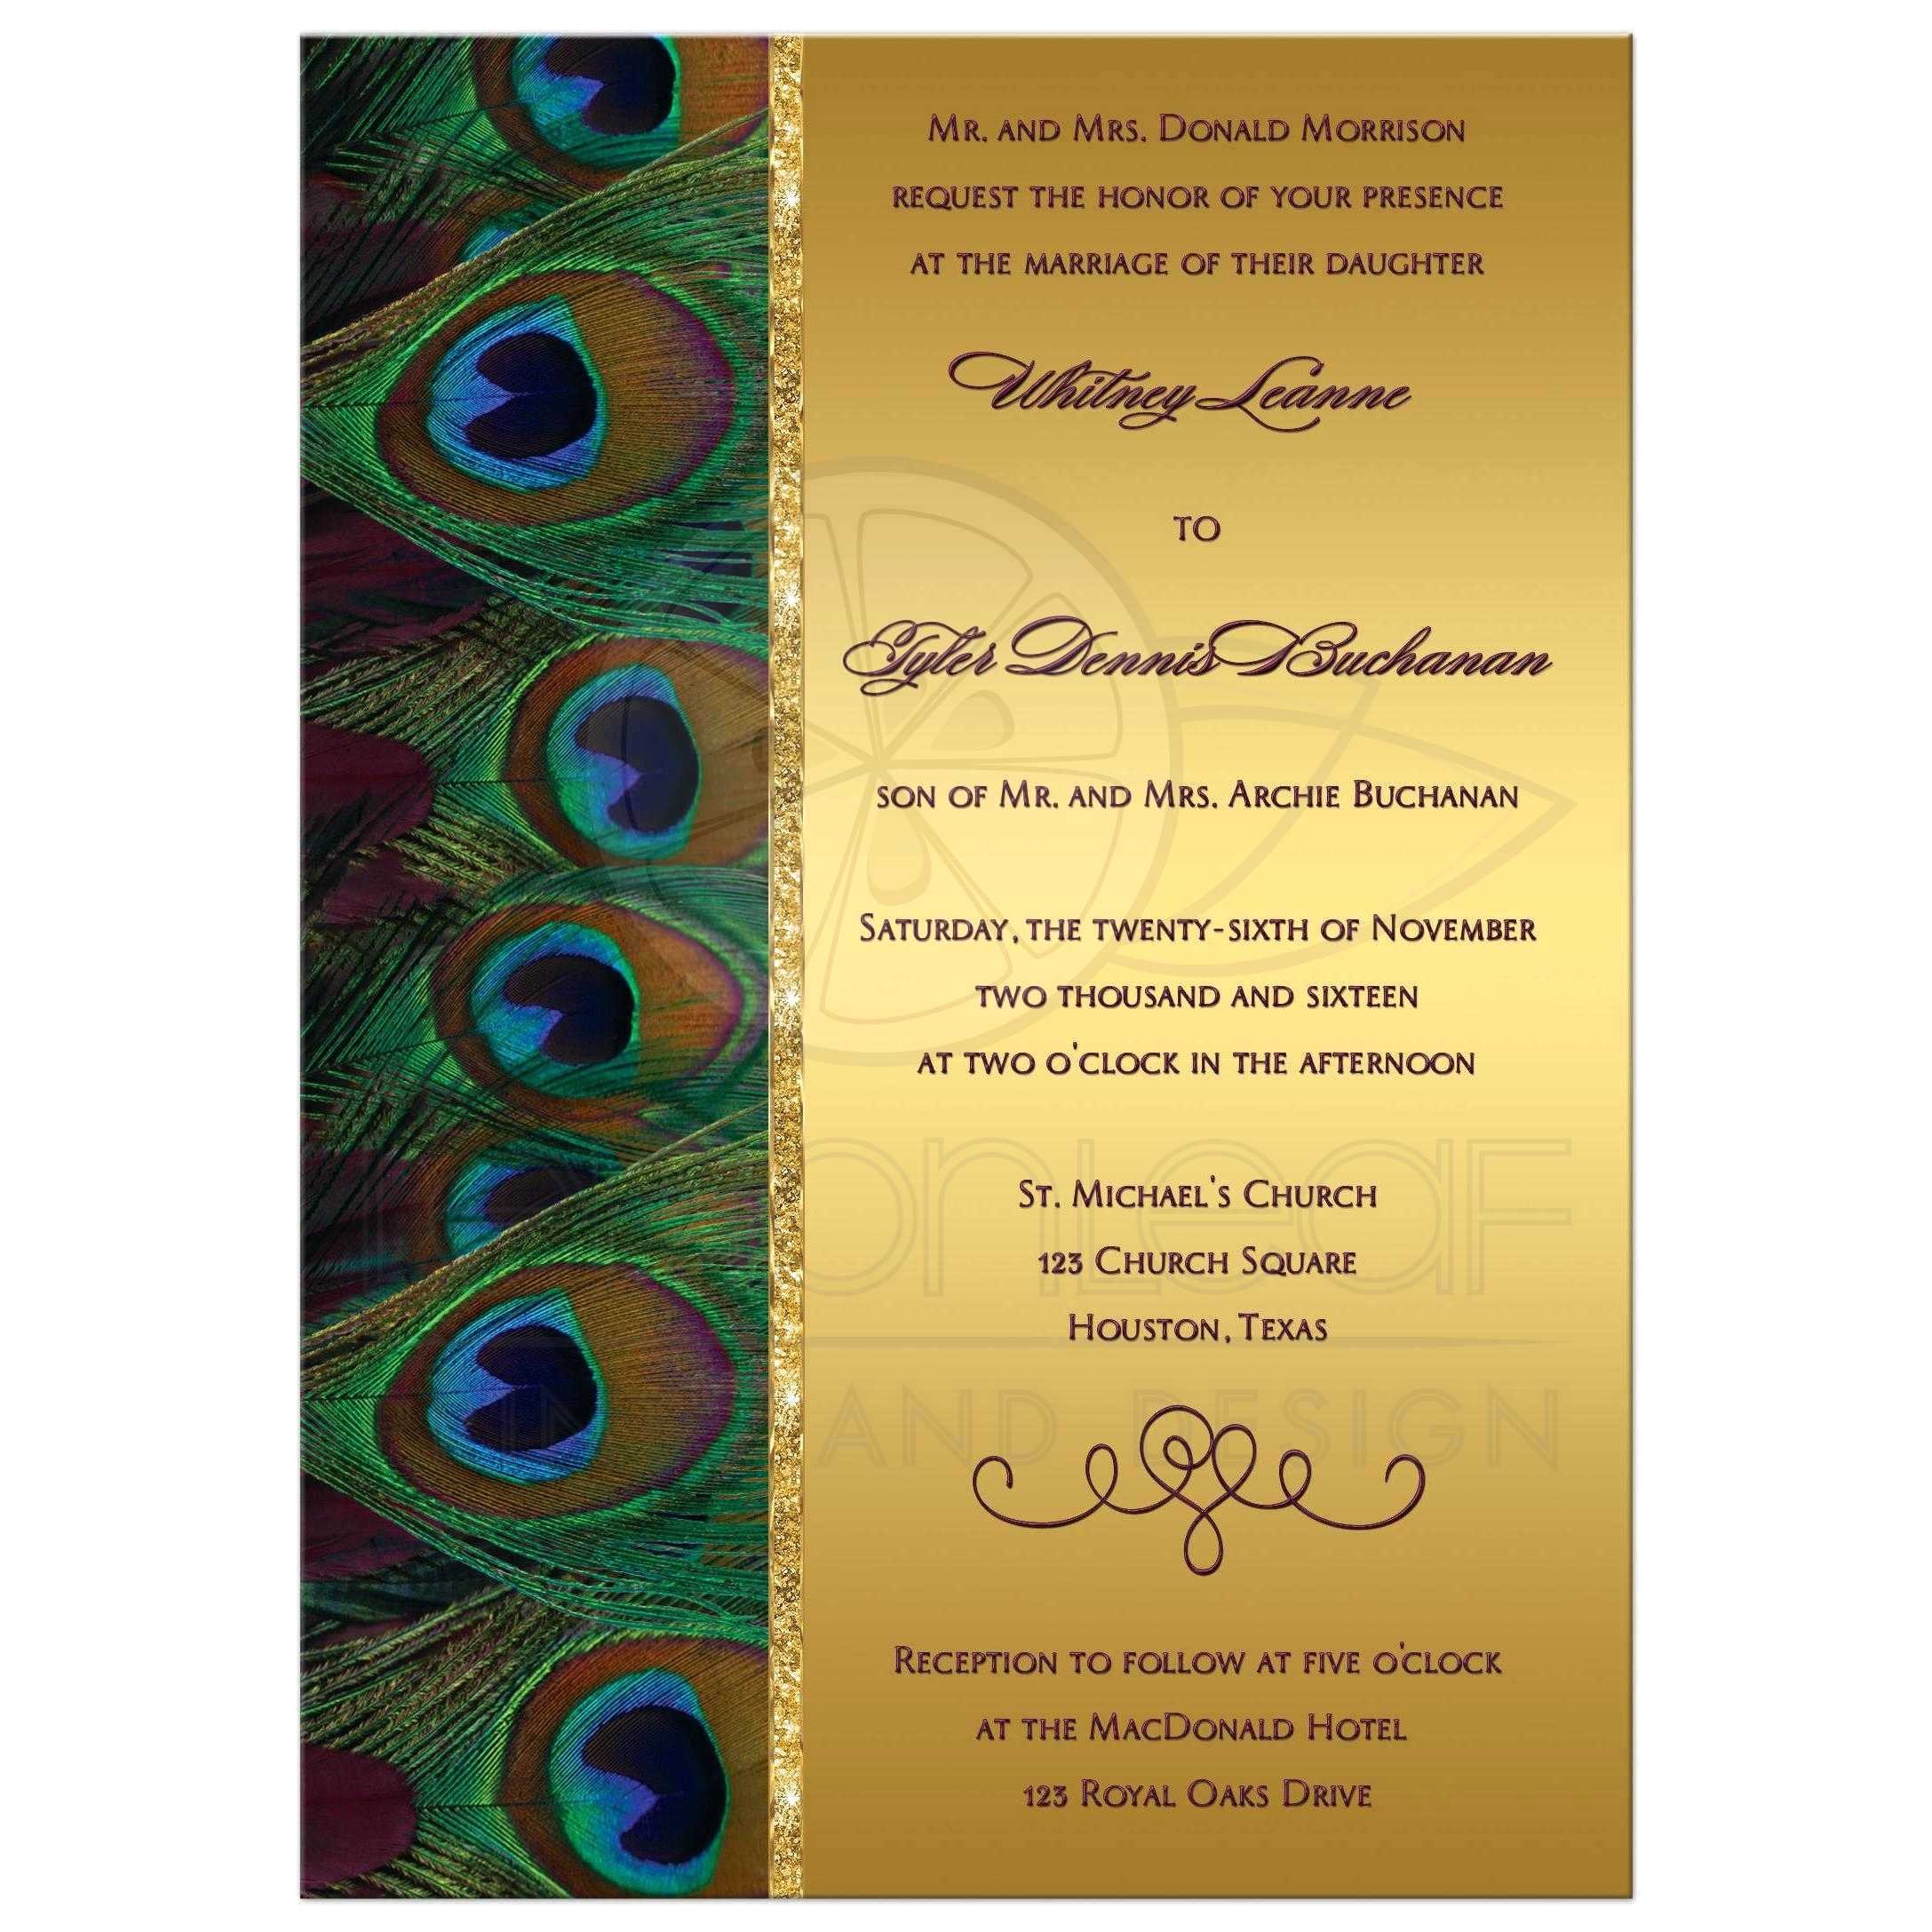 multi color wedding invitations inspirational wedding invitation peacock feathers